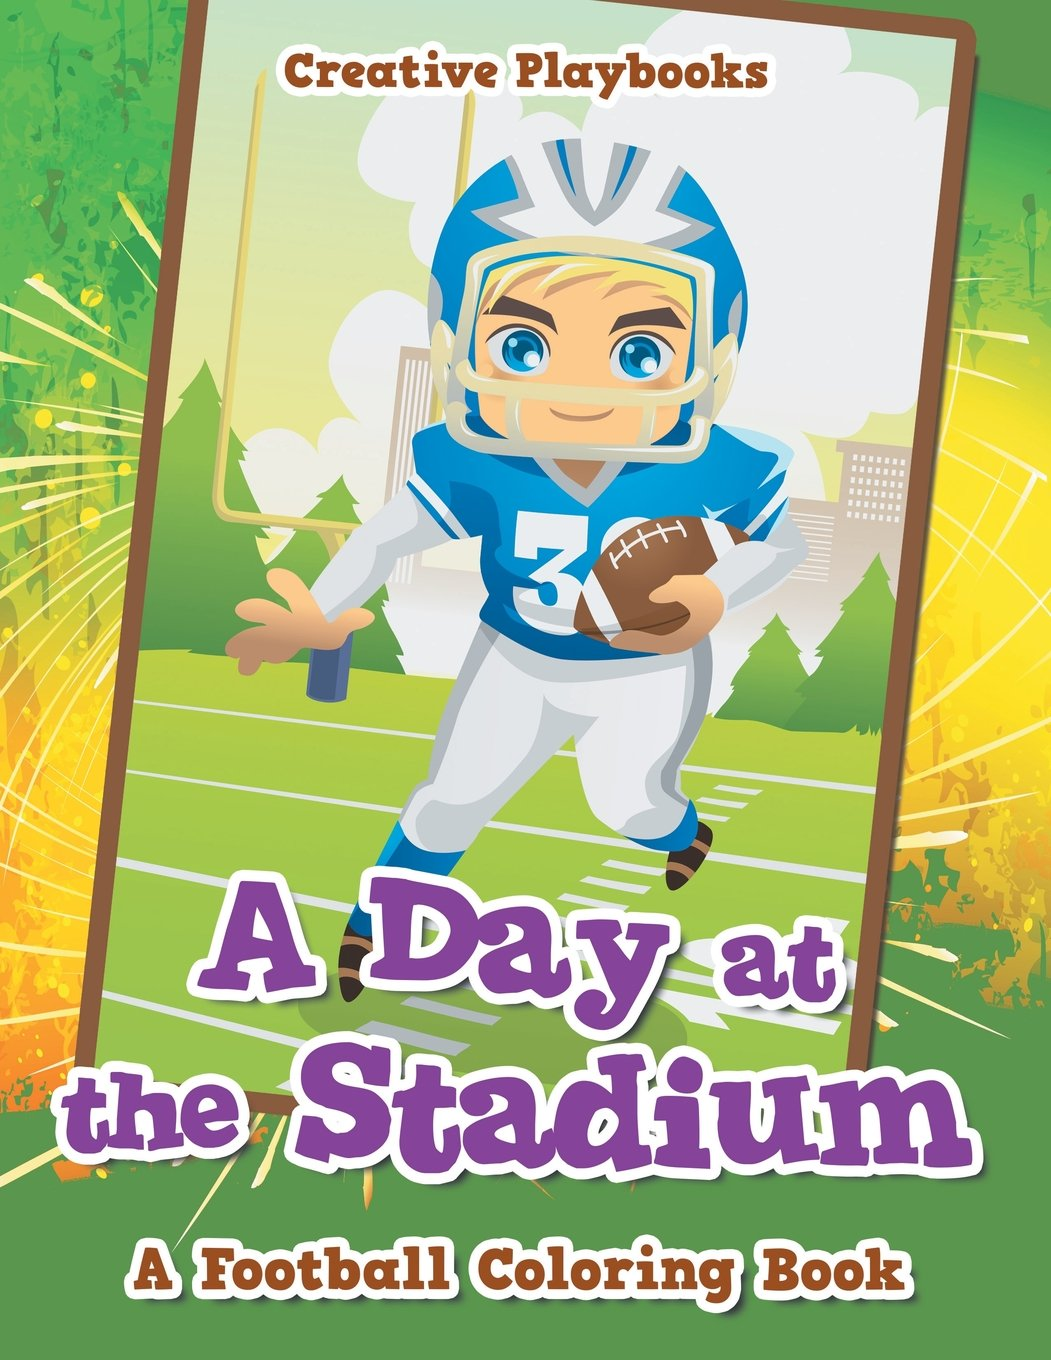 A day at the stadium a football coloring book paperback july 21 2016